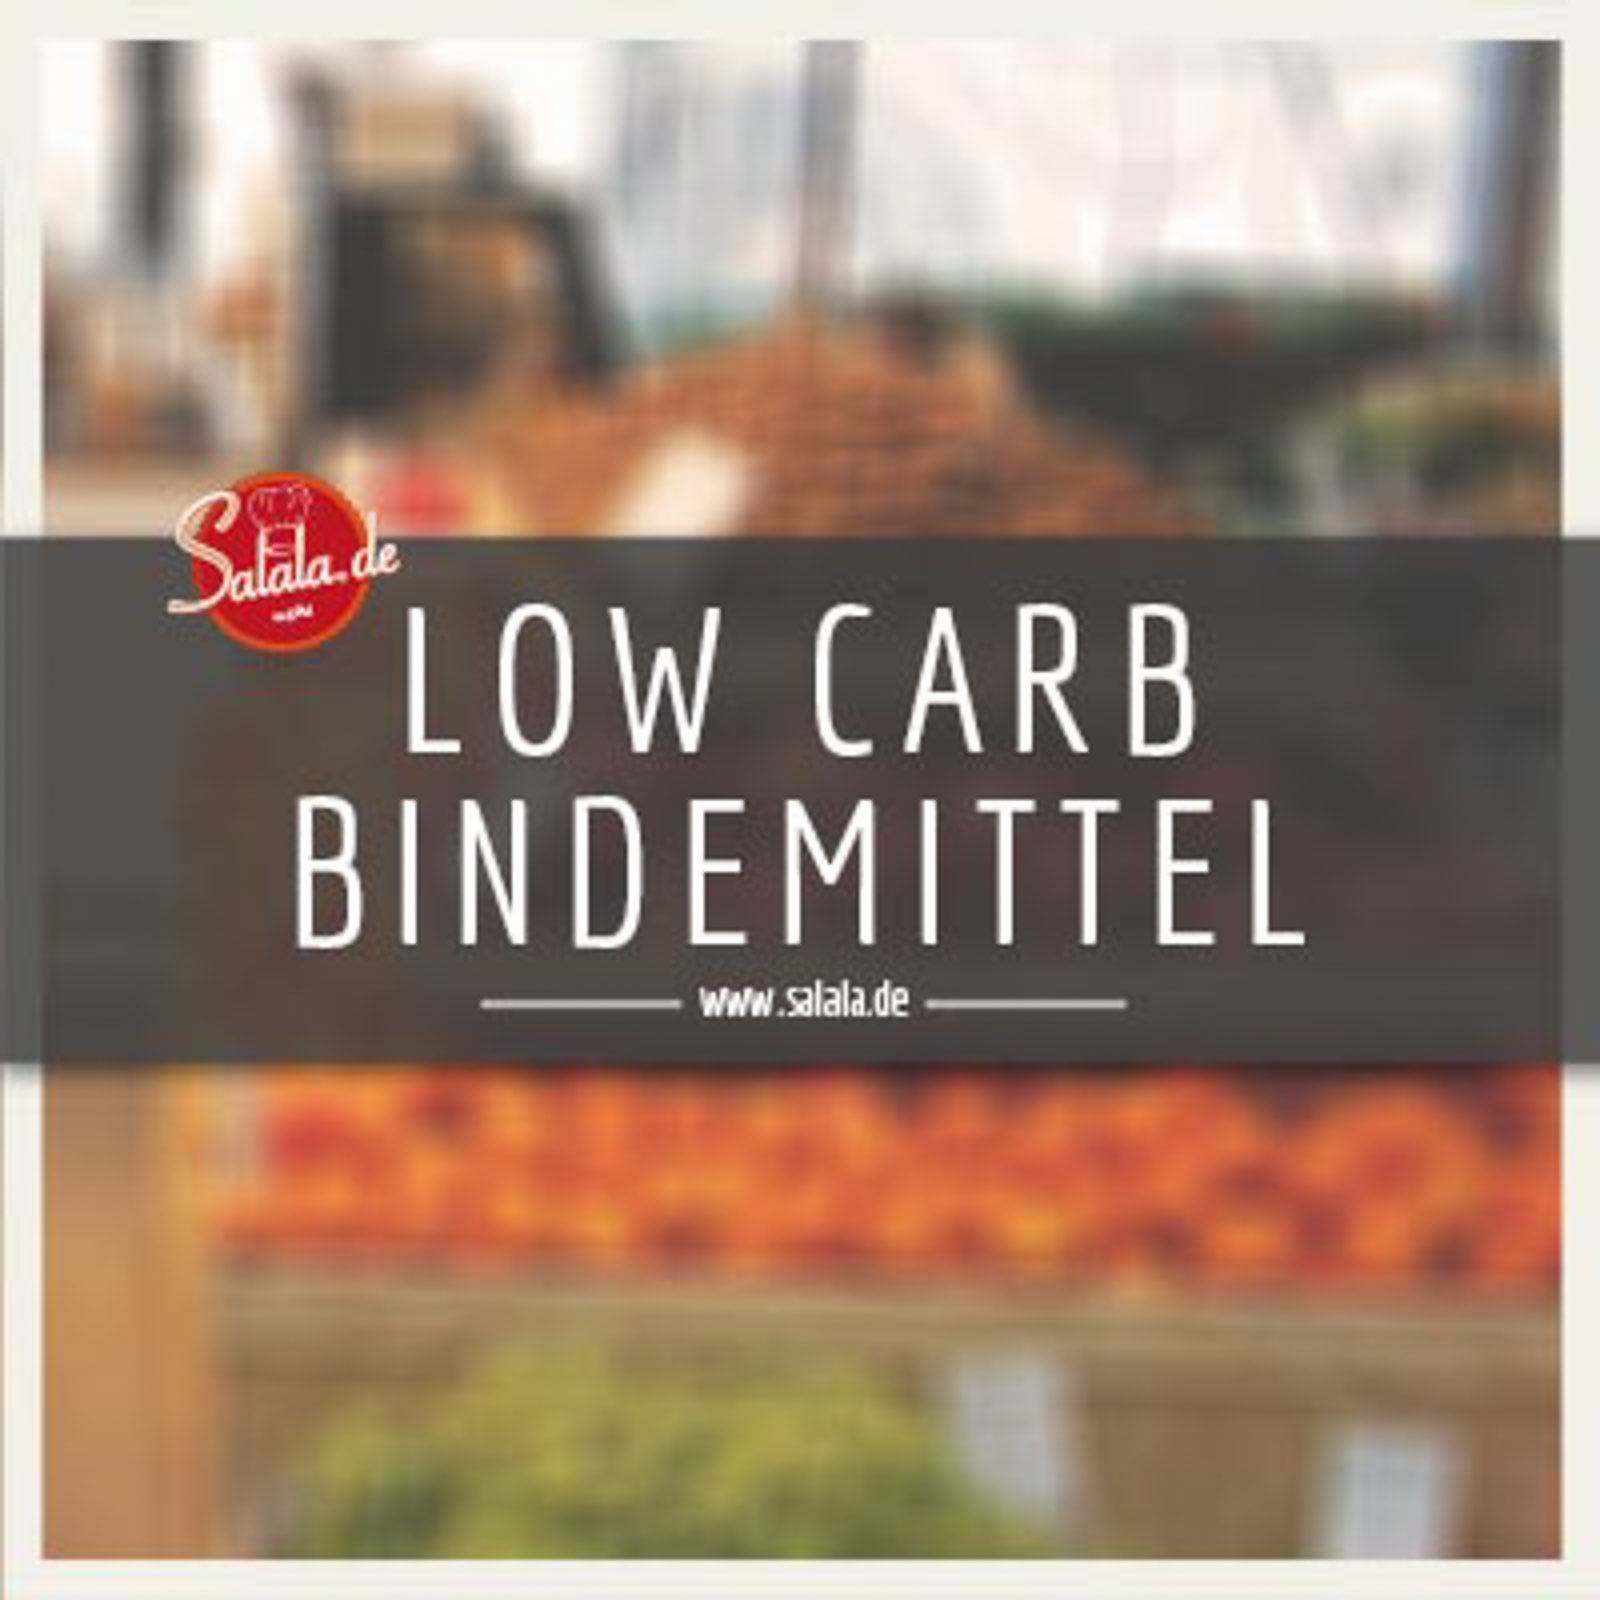 Low Carb Bindemittel